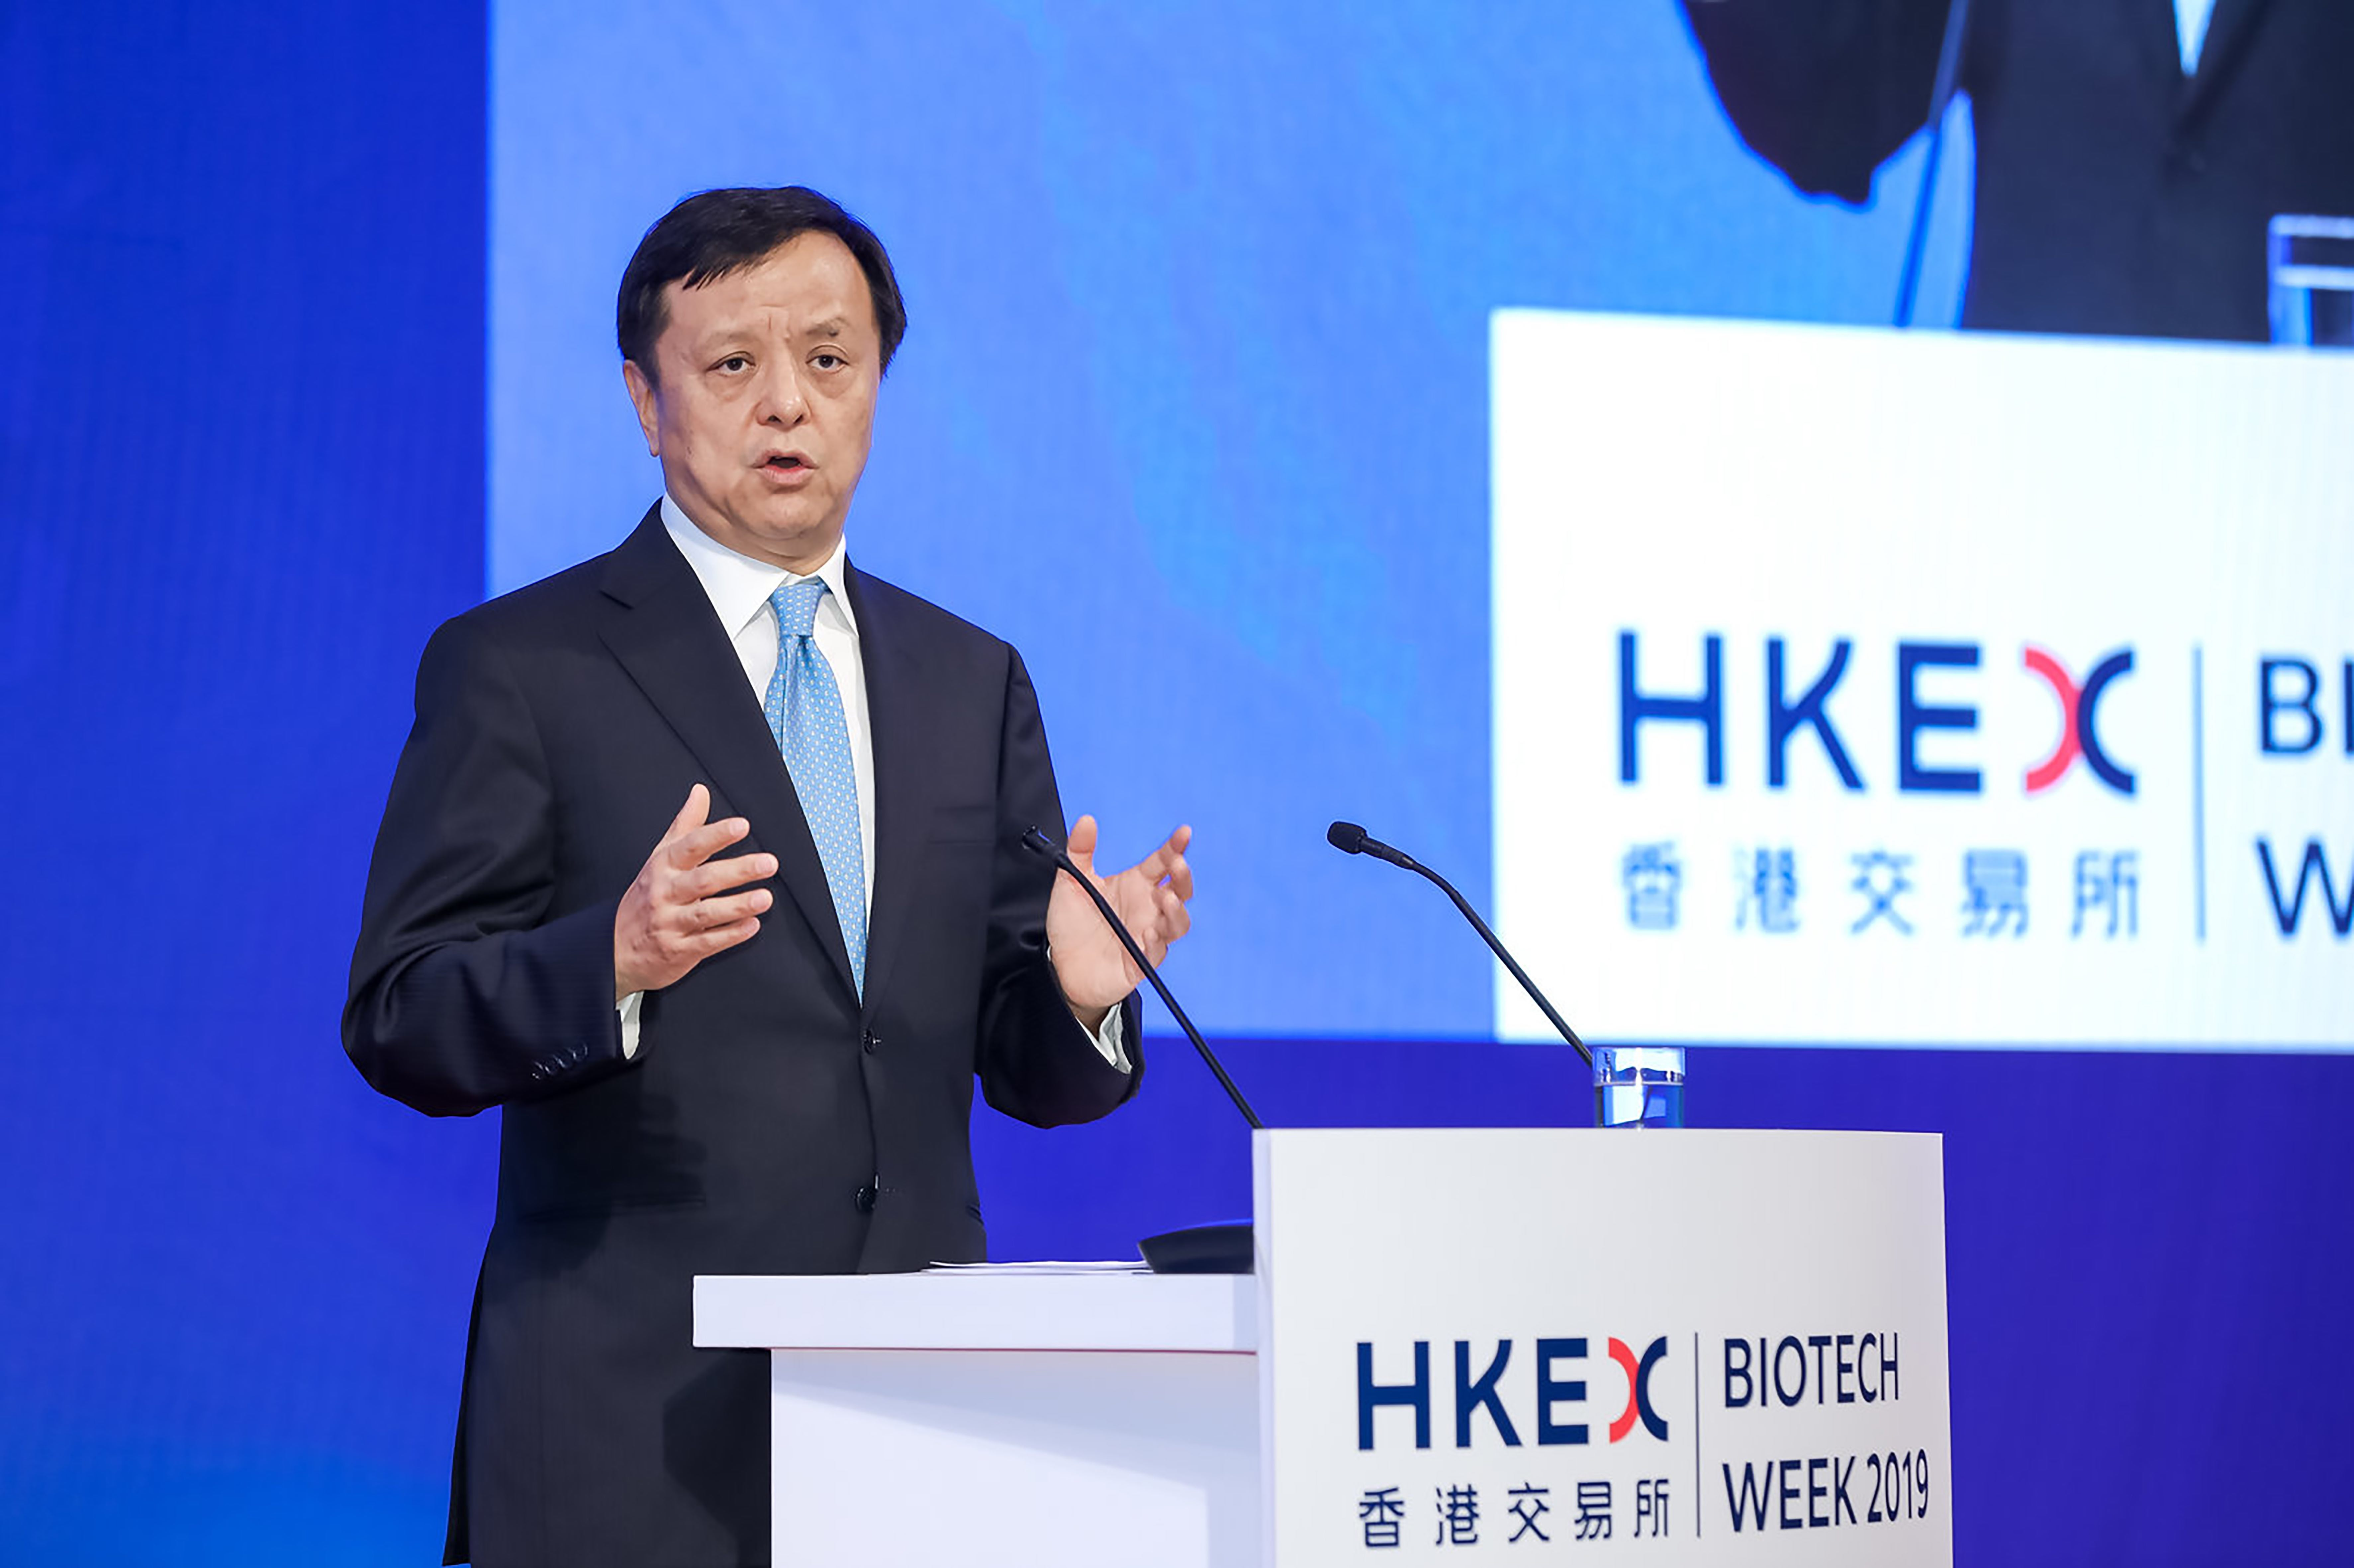 HKEX Chief Executive Charles Li notes the growing importance of Hong Kong as a fund raising centre for Biotech industry in his keynote speech